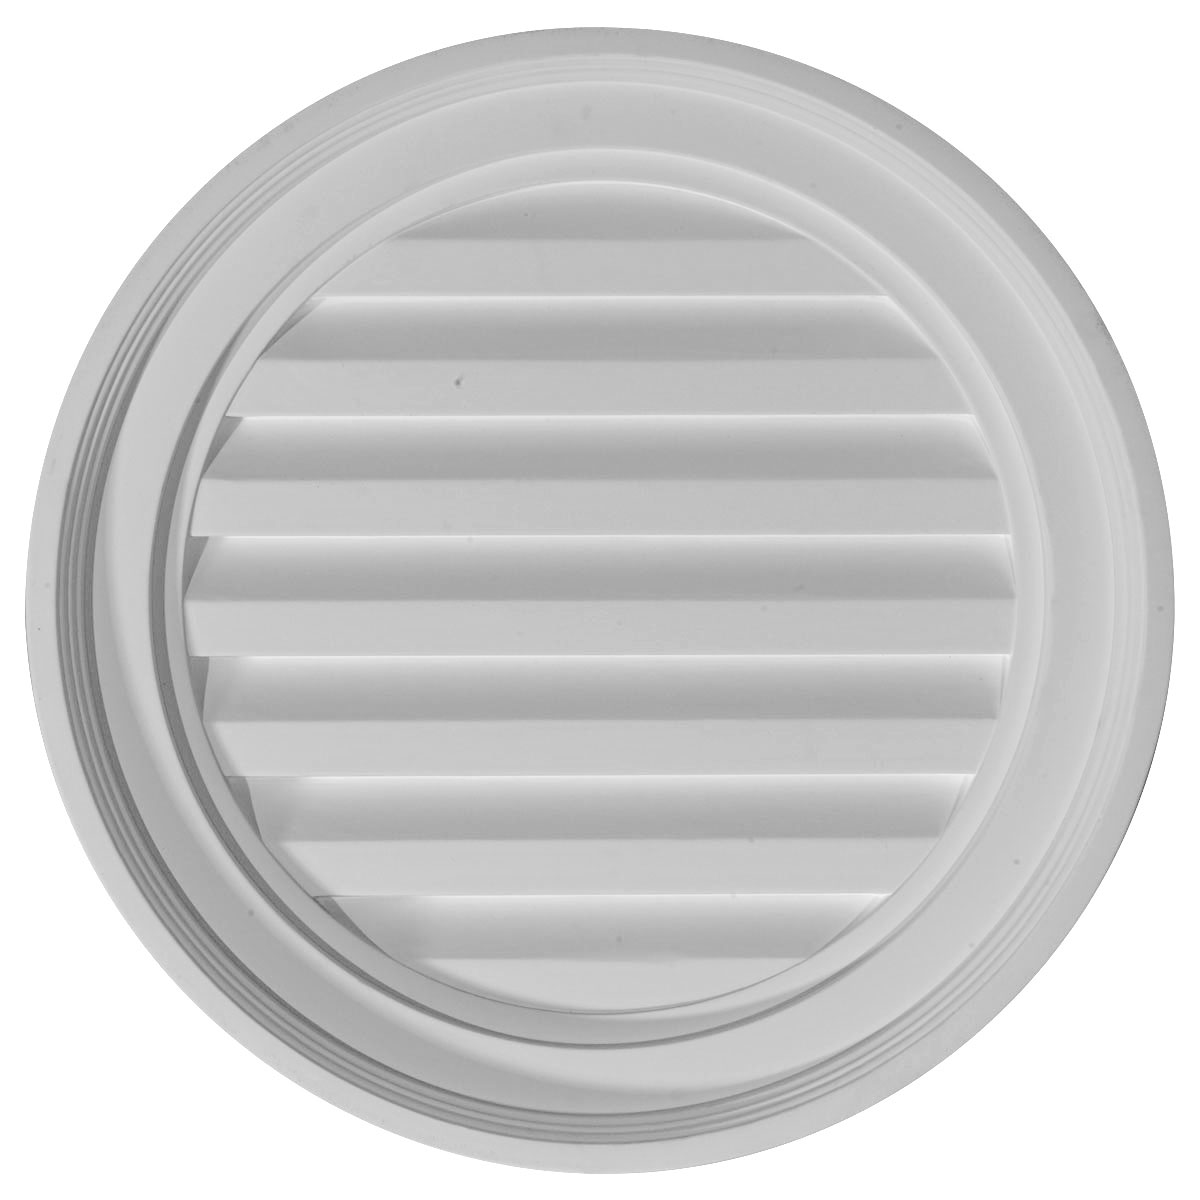 18w X 18h Round Gable Vent Louver Functional Burroughs Hardwoods Online Store